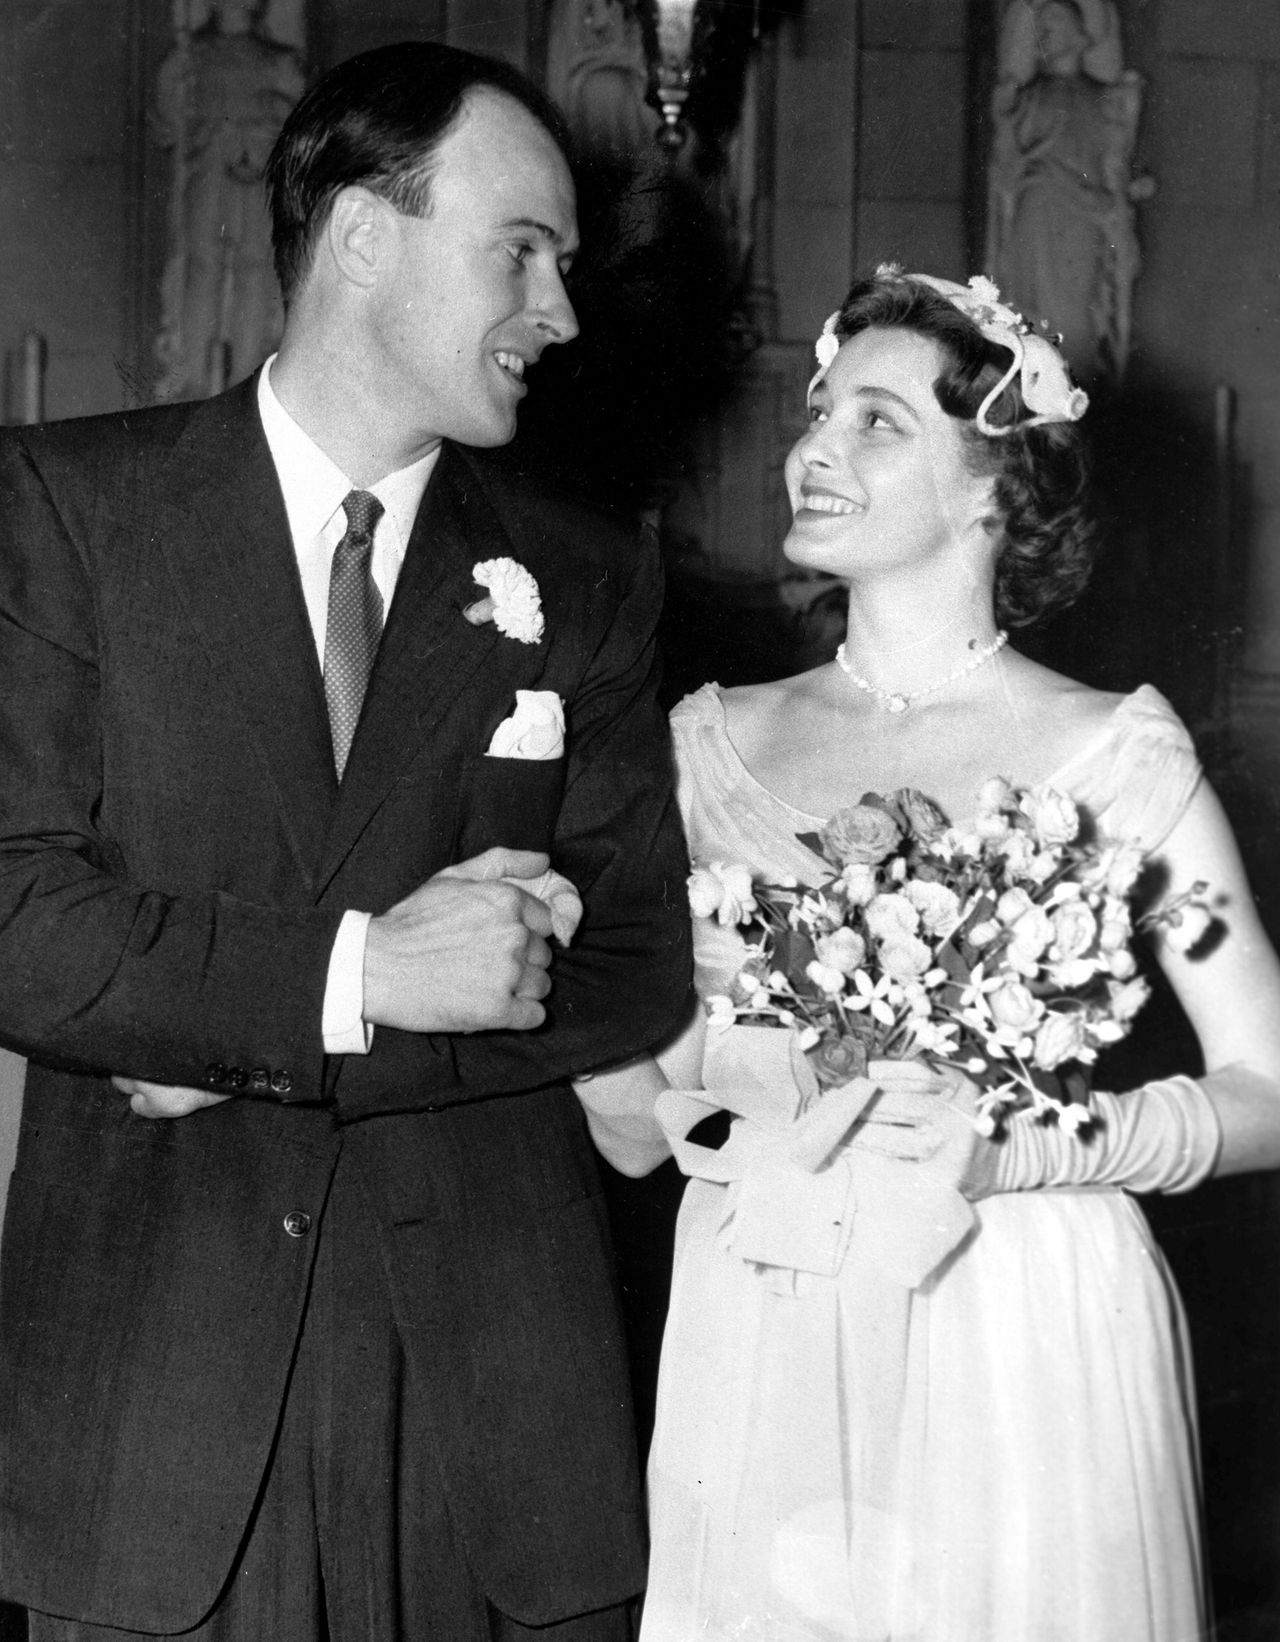 Hollywood screen star Patricia Neal smiles at her new husband British writer Roald Dahl after their wedding at Trinity Church Chapel in New York, July 2, 1953. (AP Photos)